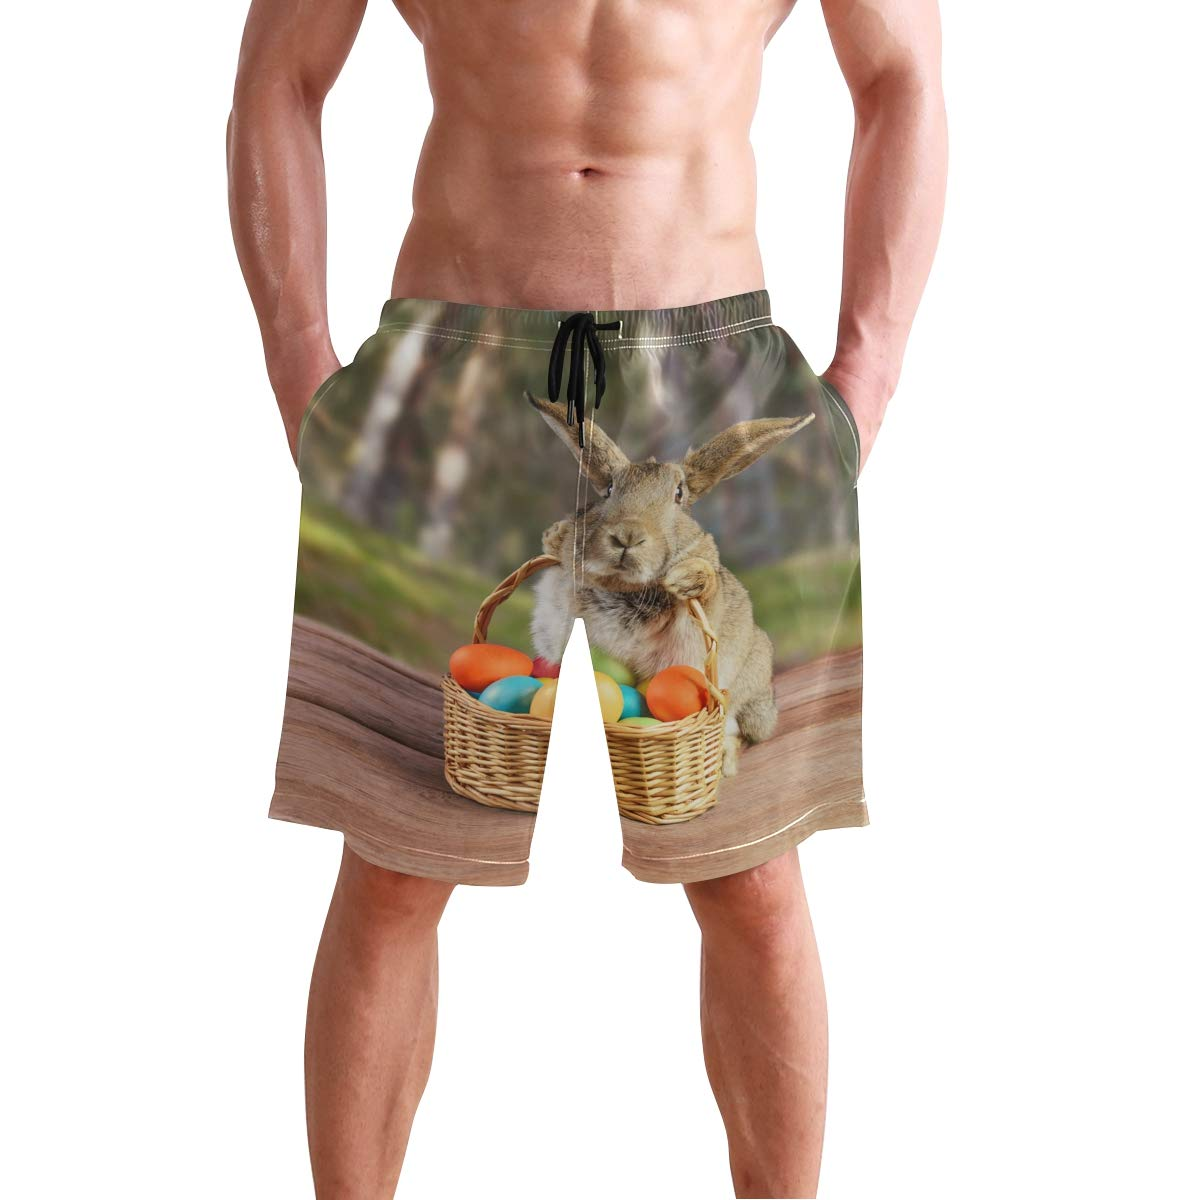 JERECY Mens Swim Trunks Happy Easter Bunny with Colorful Egg Quick Dry Board Shorts with Drawstring and Pockets